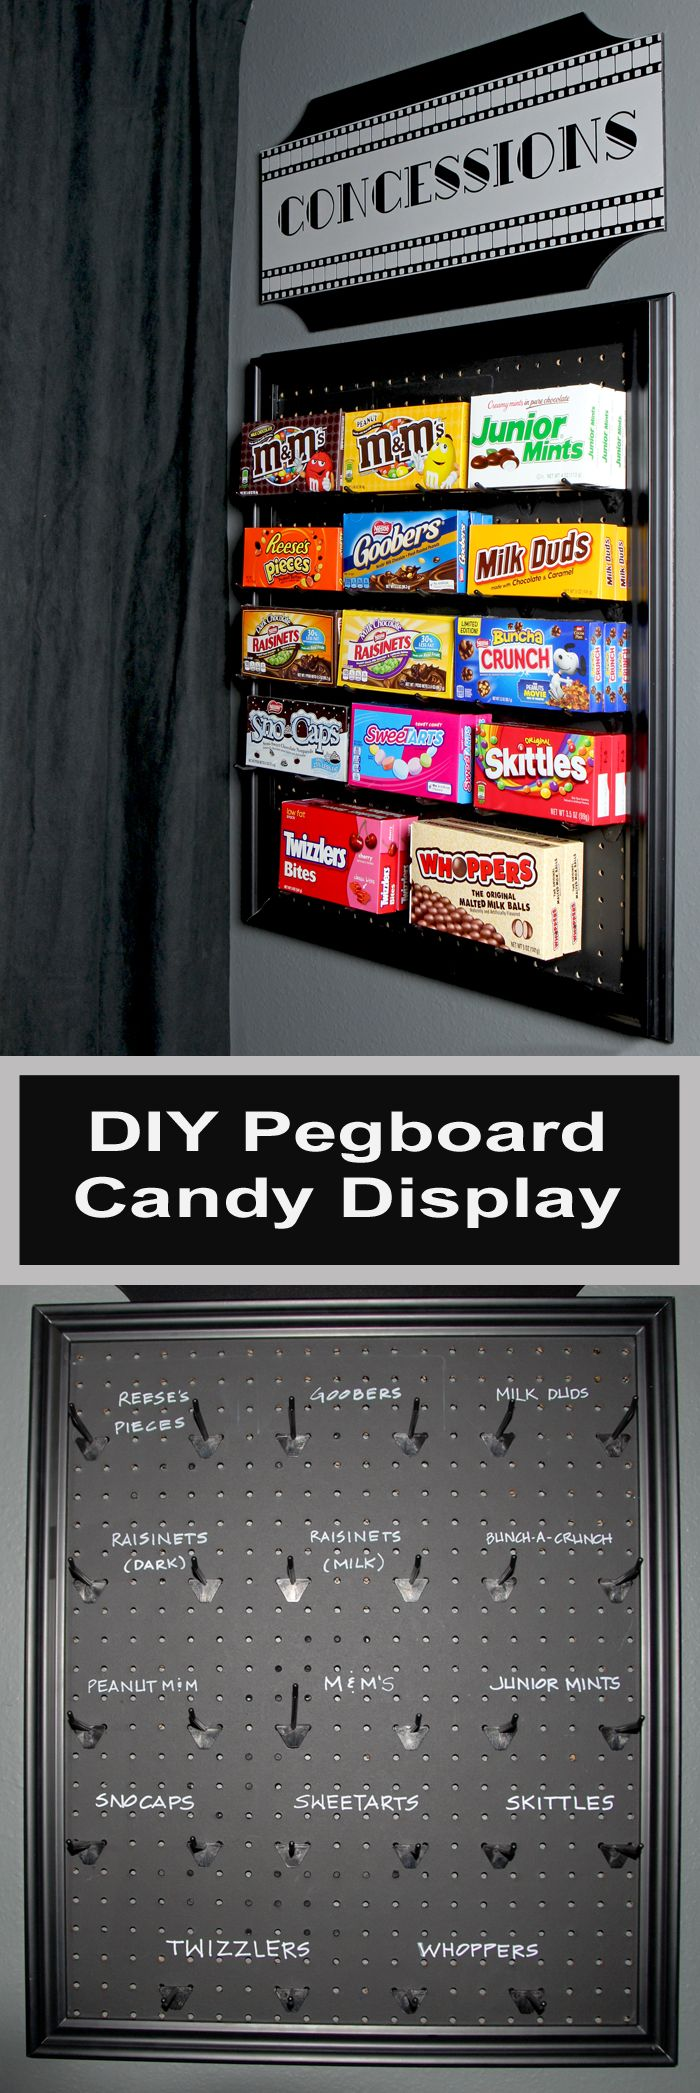 An easy DIY project using pegboard and chalkboard paint to make a fun display for candy in a media room or game room.  It could also be used on an easel for an outdoor movie night!